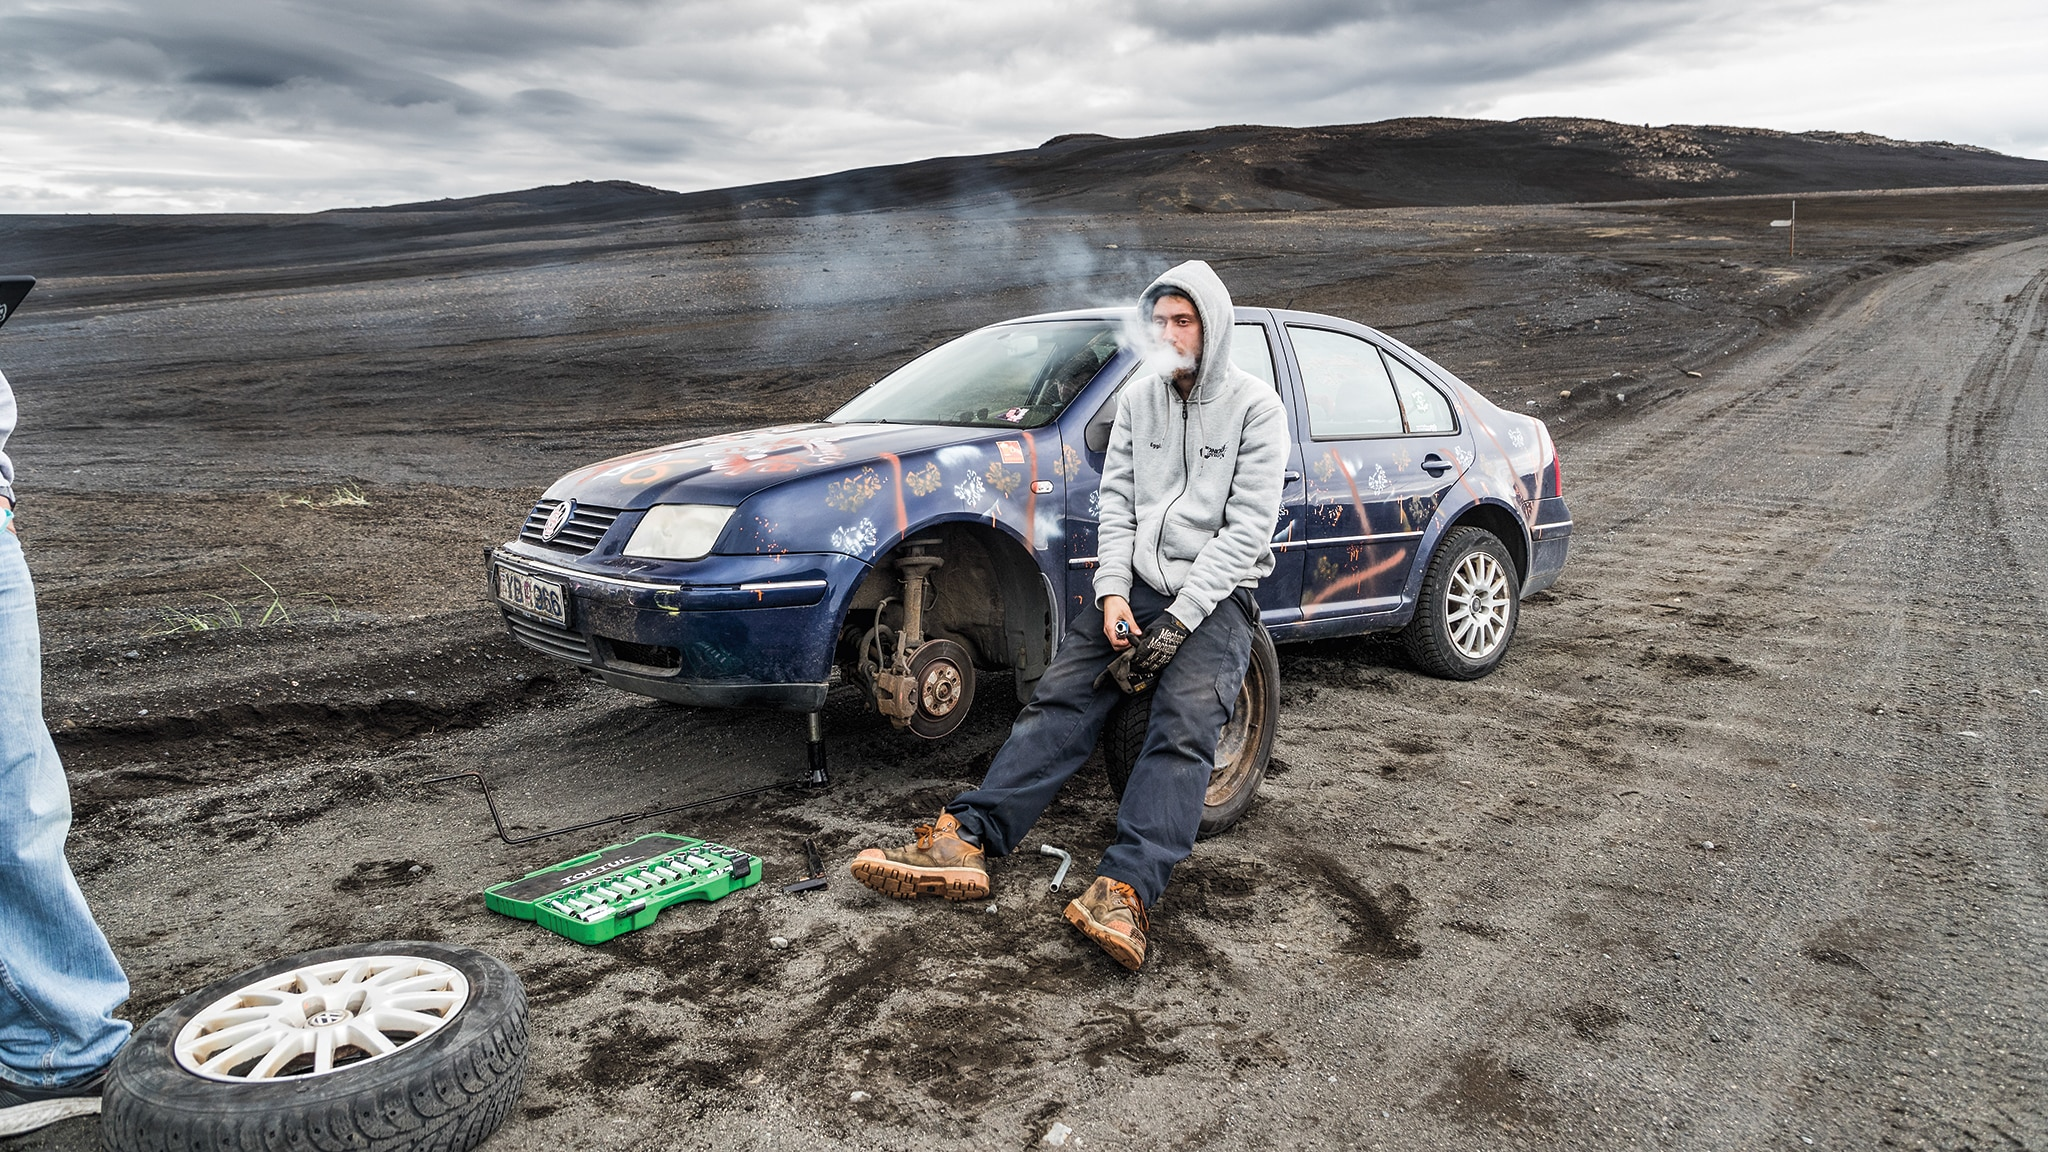 Gambler 500 in Iceland: Off-Roading in $500 Cars | Automobile Magazine